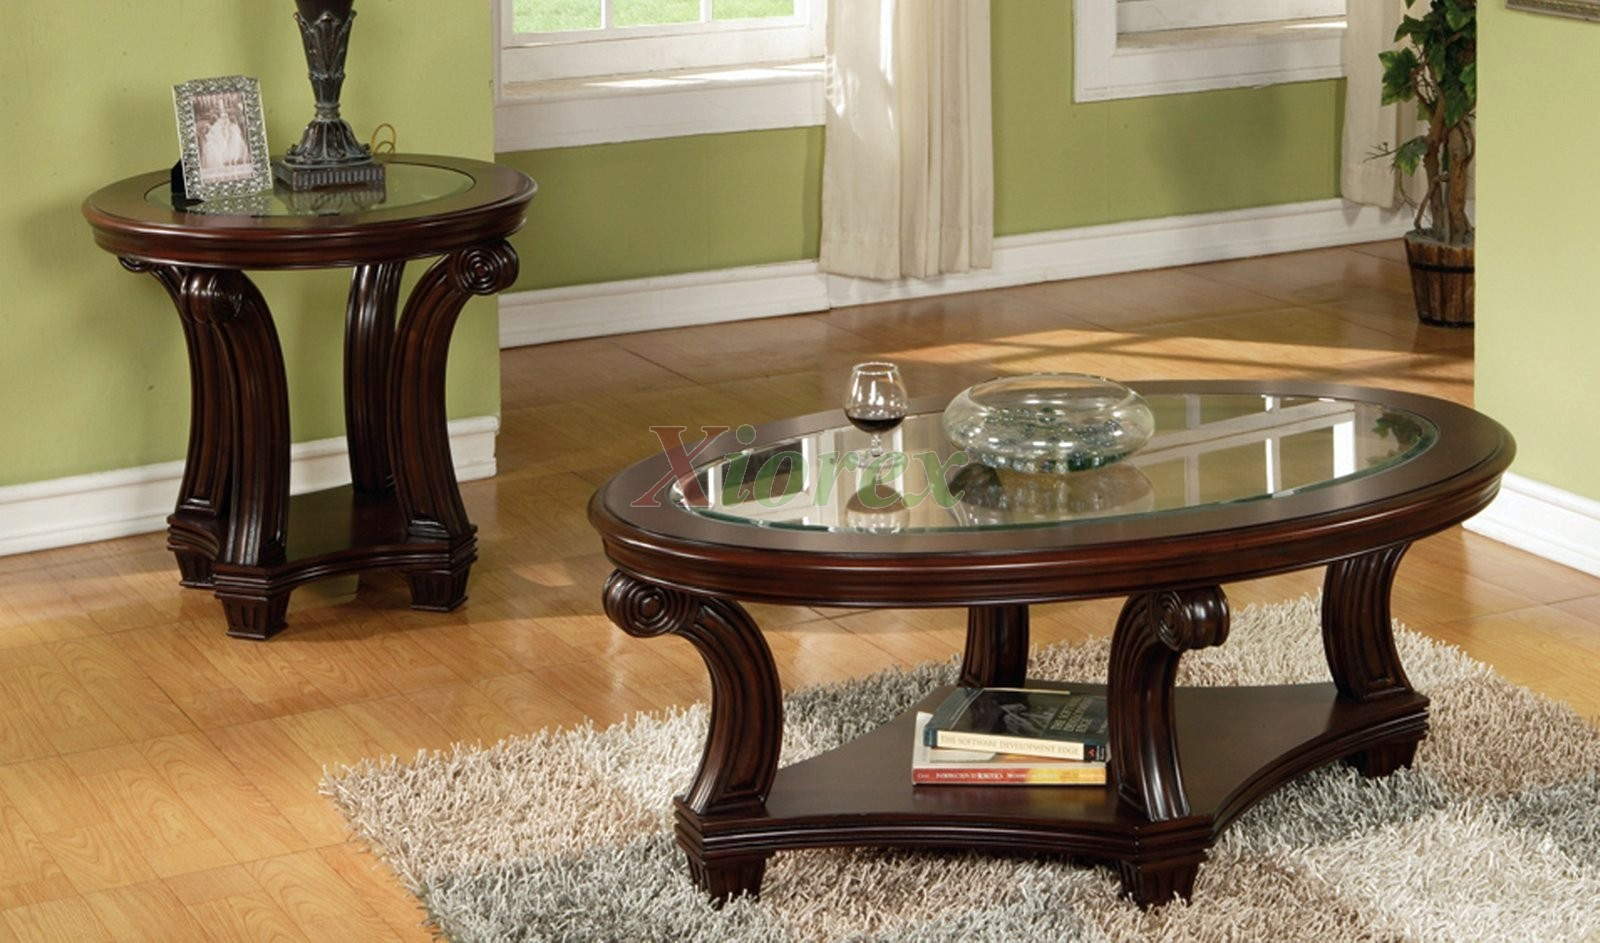 coffee tables ideas awesome wood table sets dark cherry handmade premium material transparant glass high quality green wallpaper background cool decoration end small white lamp